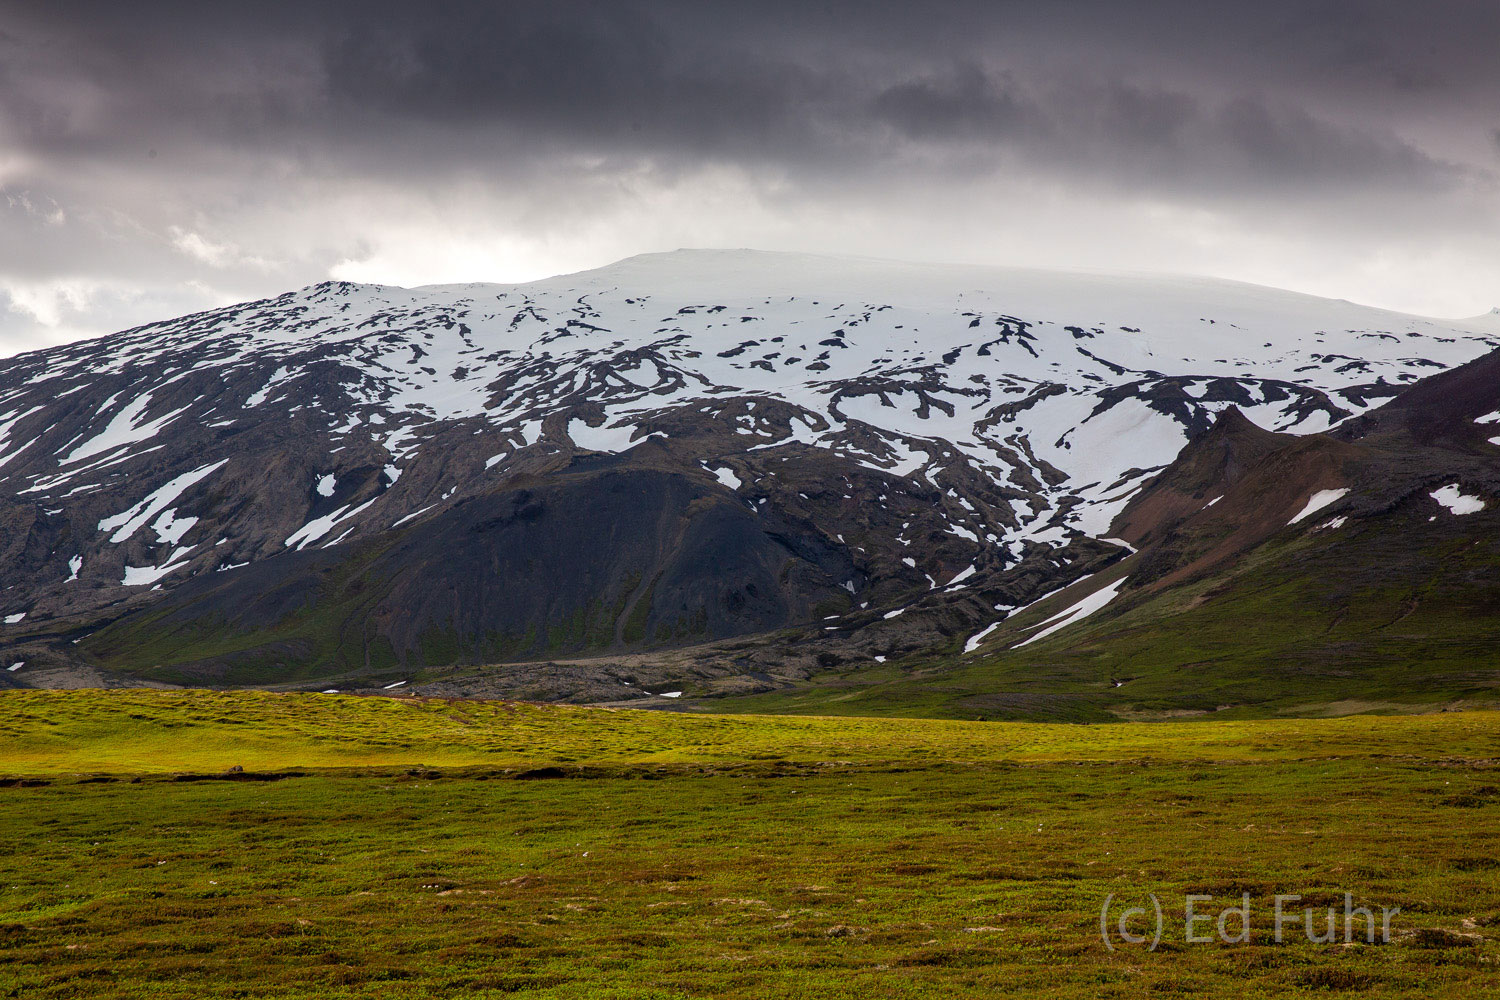 On Iceland even mid summer offers many reminders that winter and cold and ice are never really far away, especially near the...